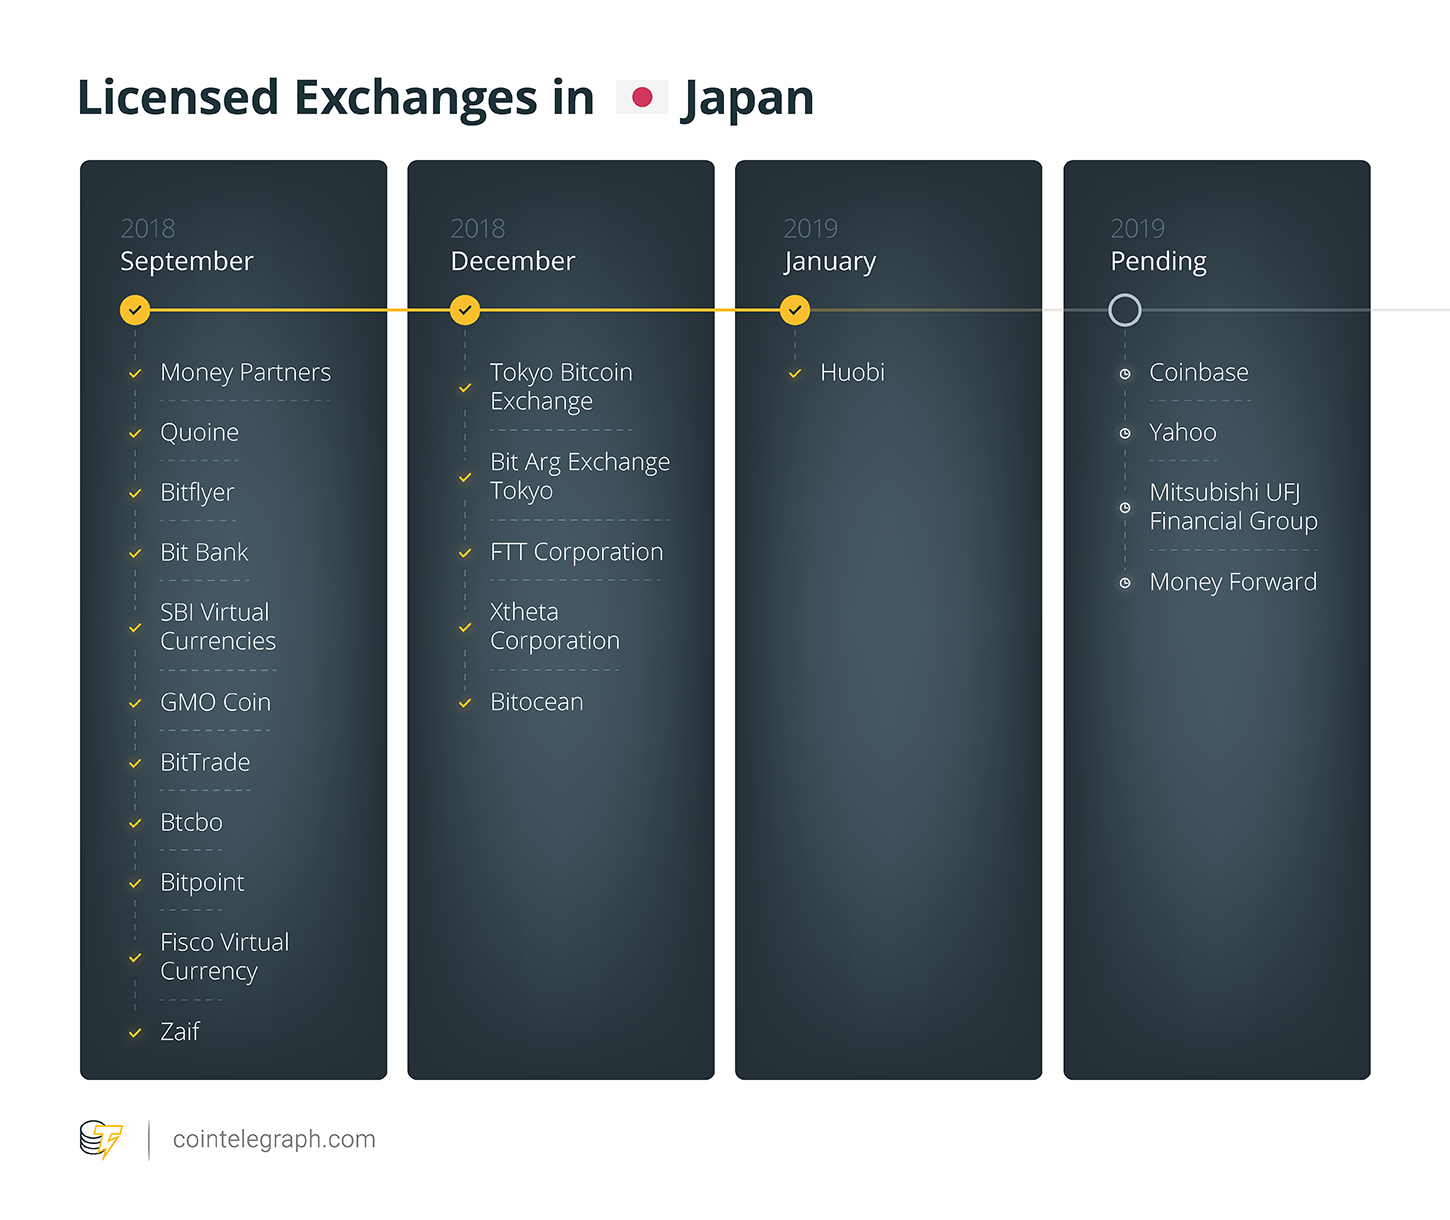 Exchanges authorized in Japan